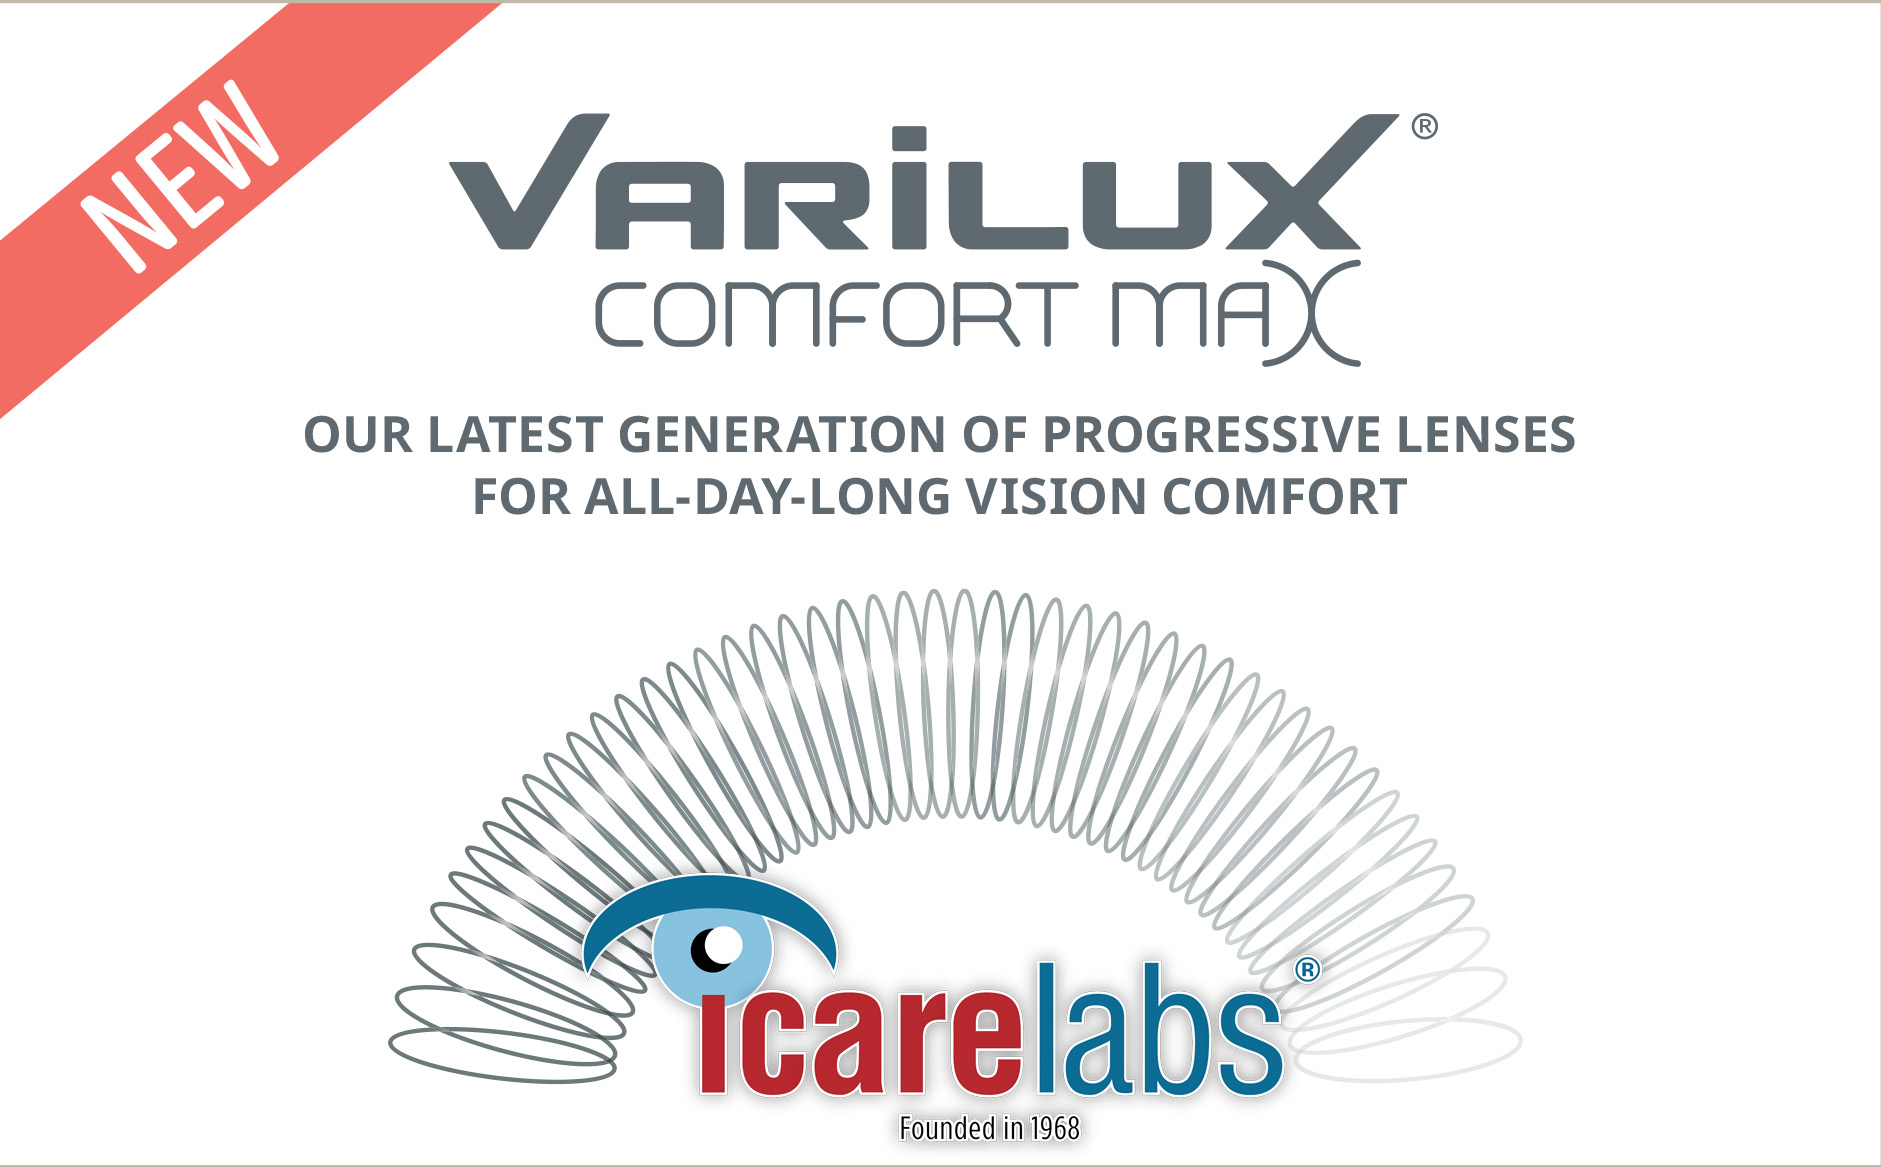 Varilux Comfort Max Launch Announcement IcareLabs